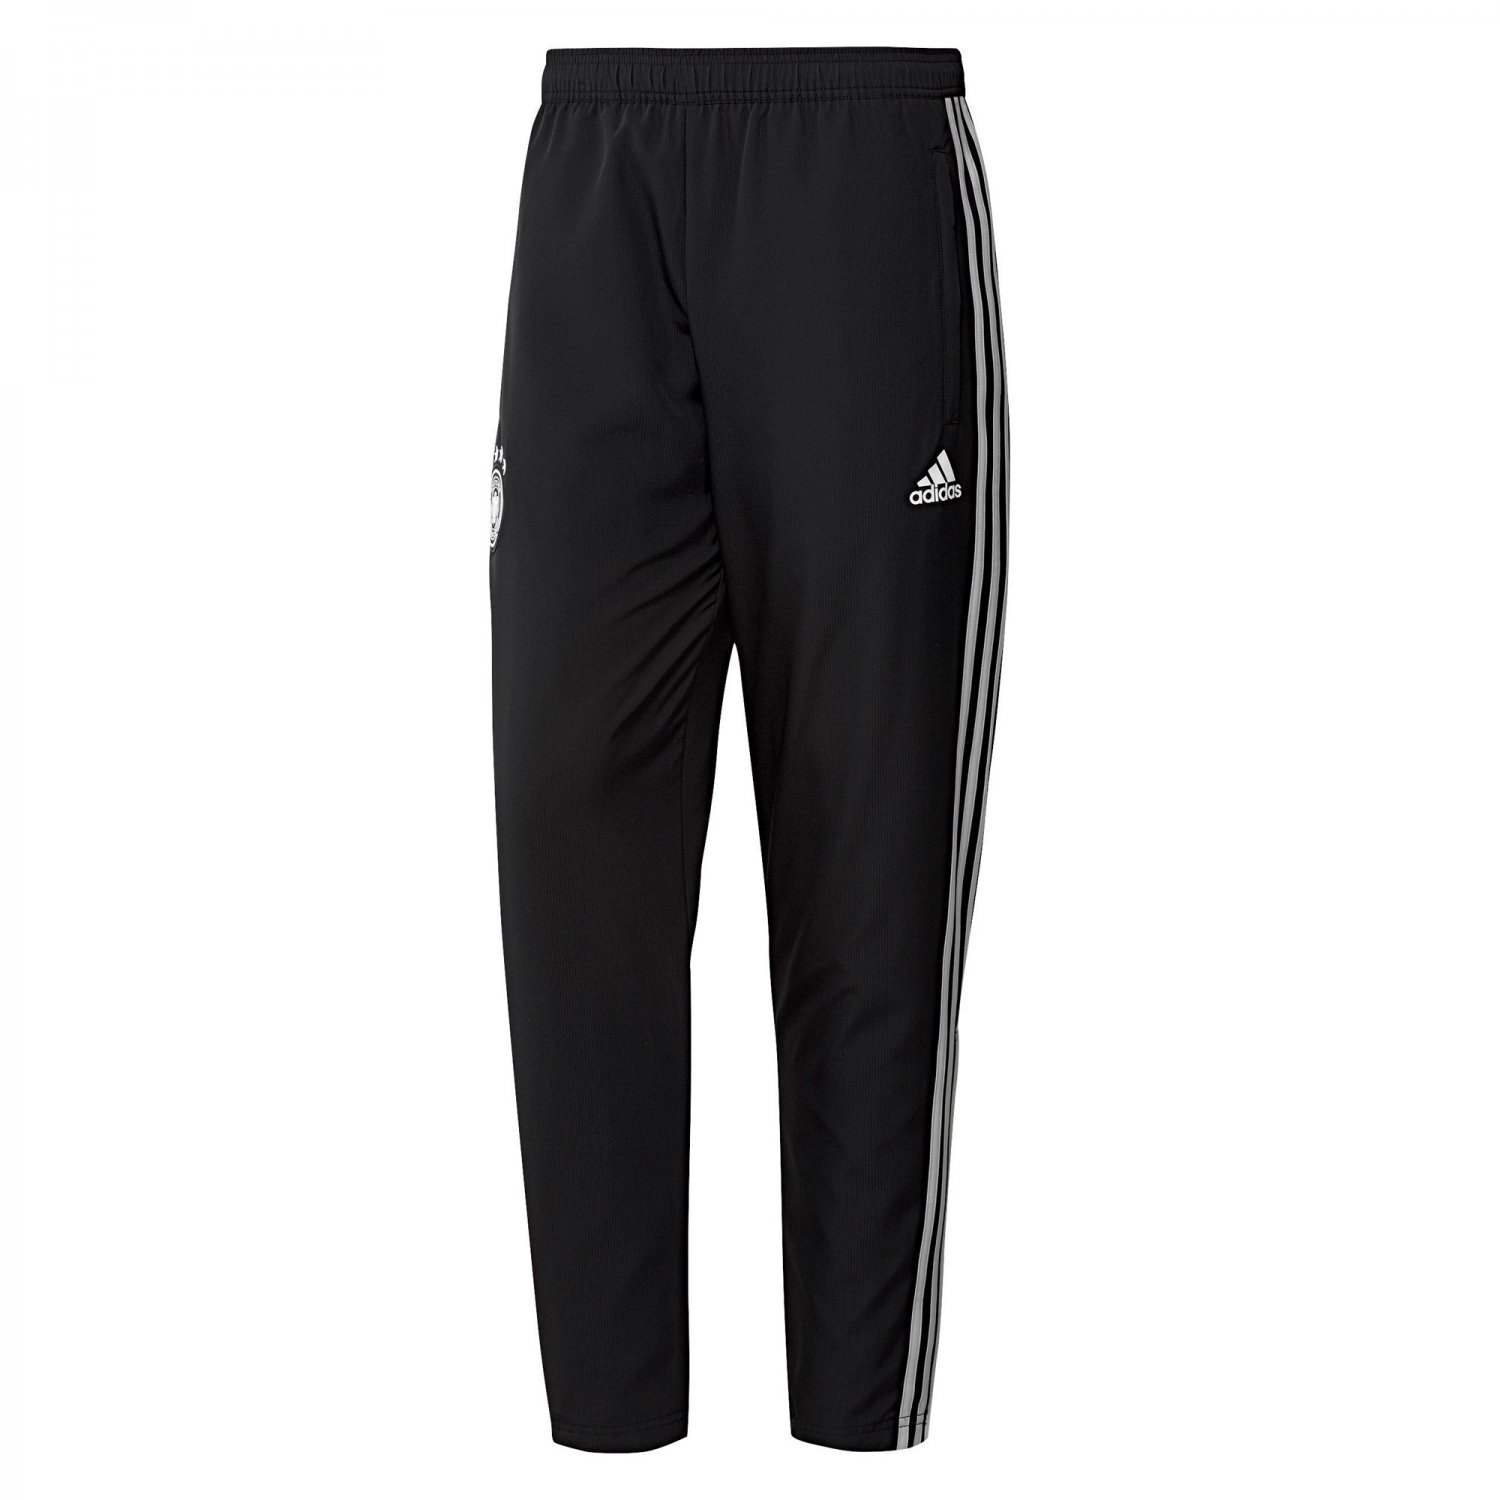 2018-2019 Germany Adidas Woven Pants (Black) B0778ZGPMT XXL 40